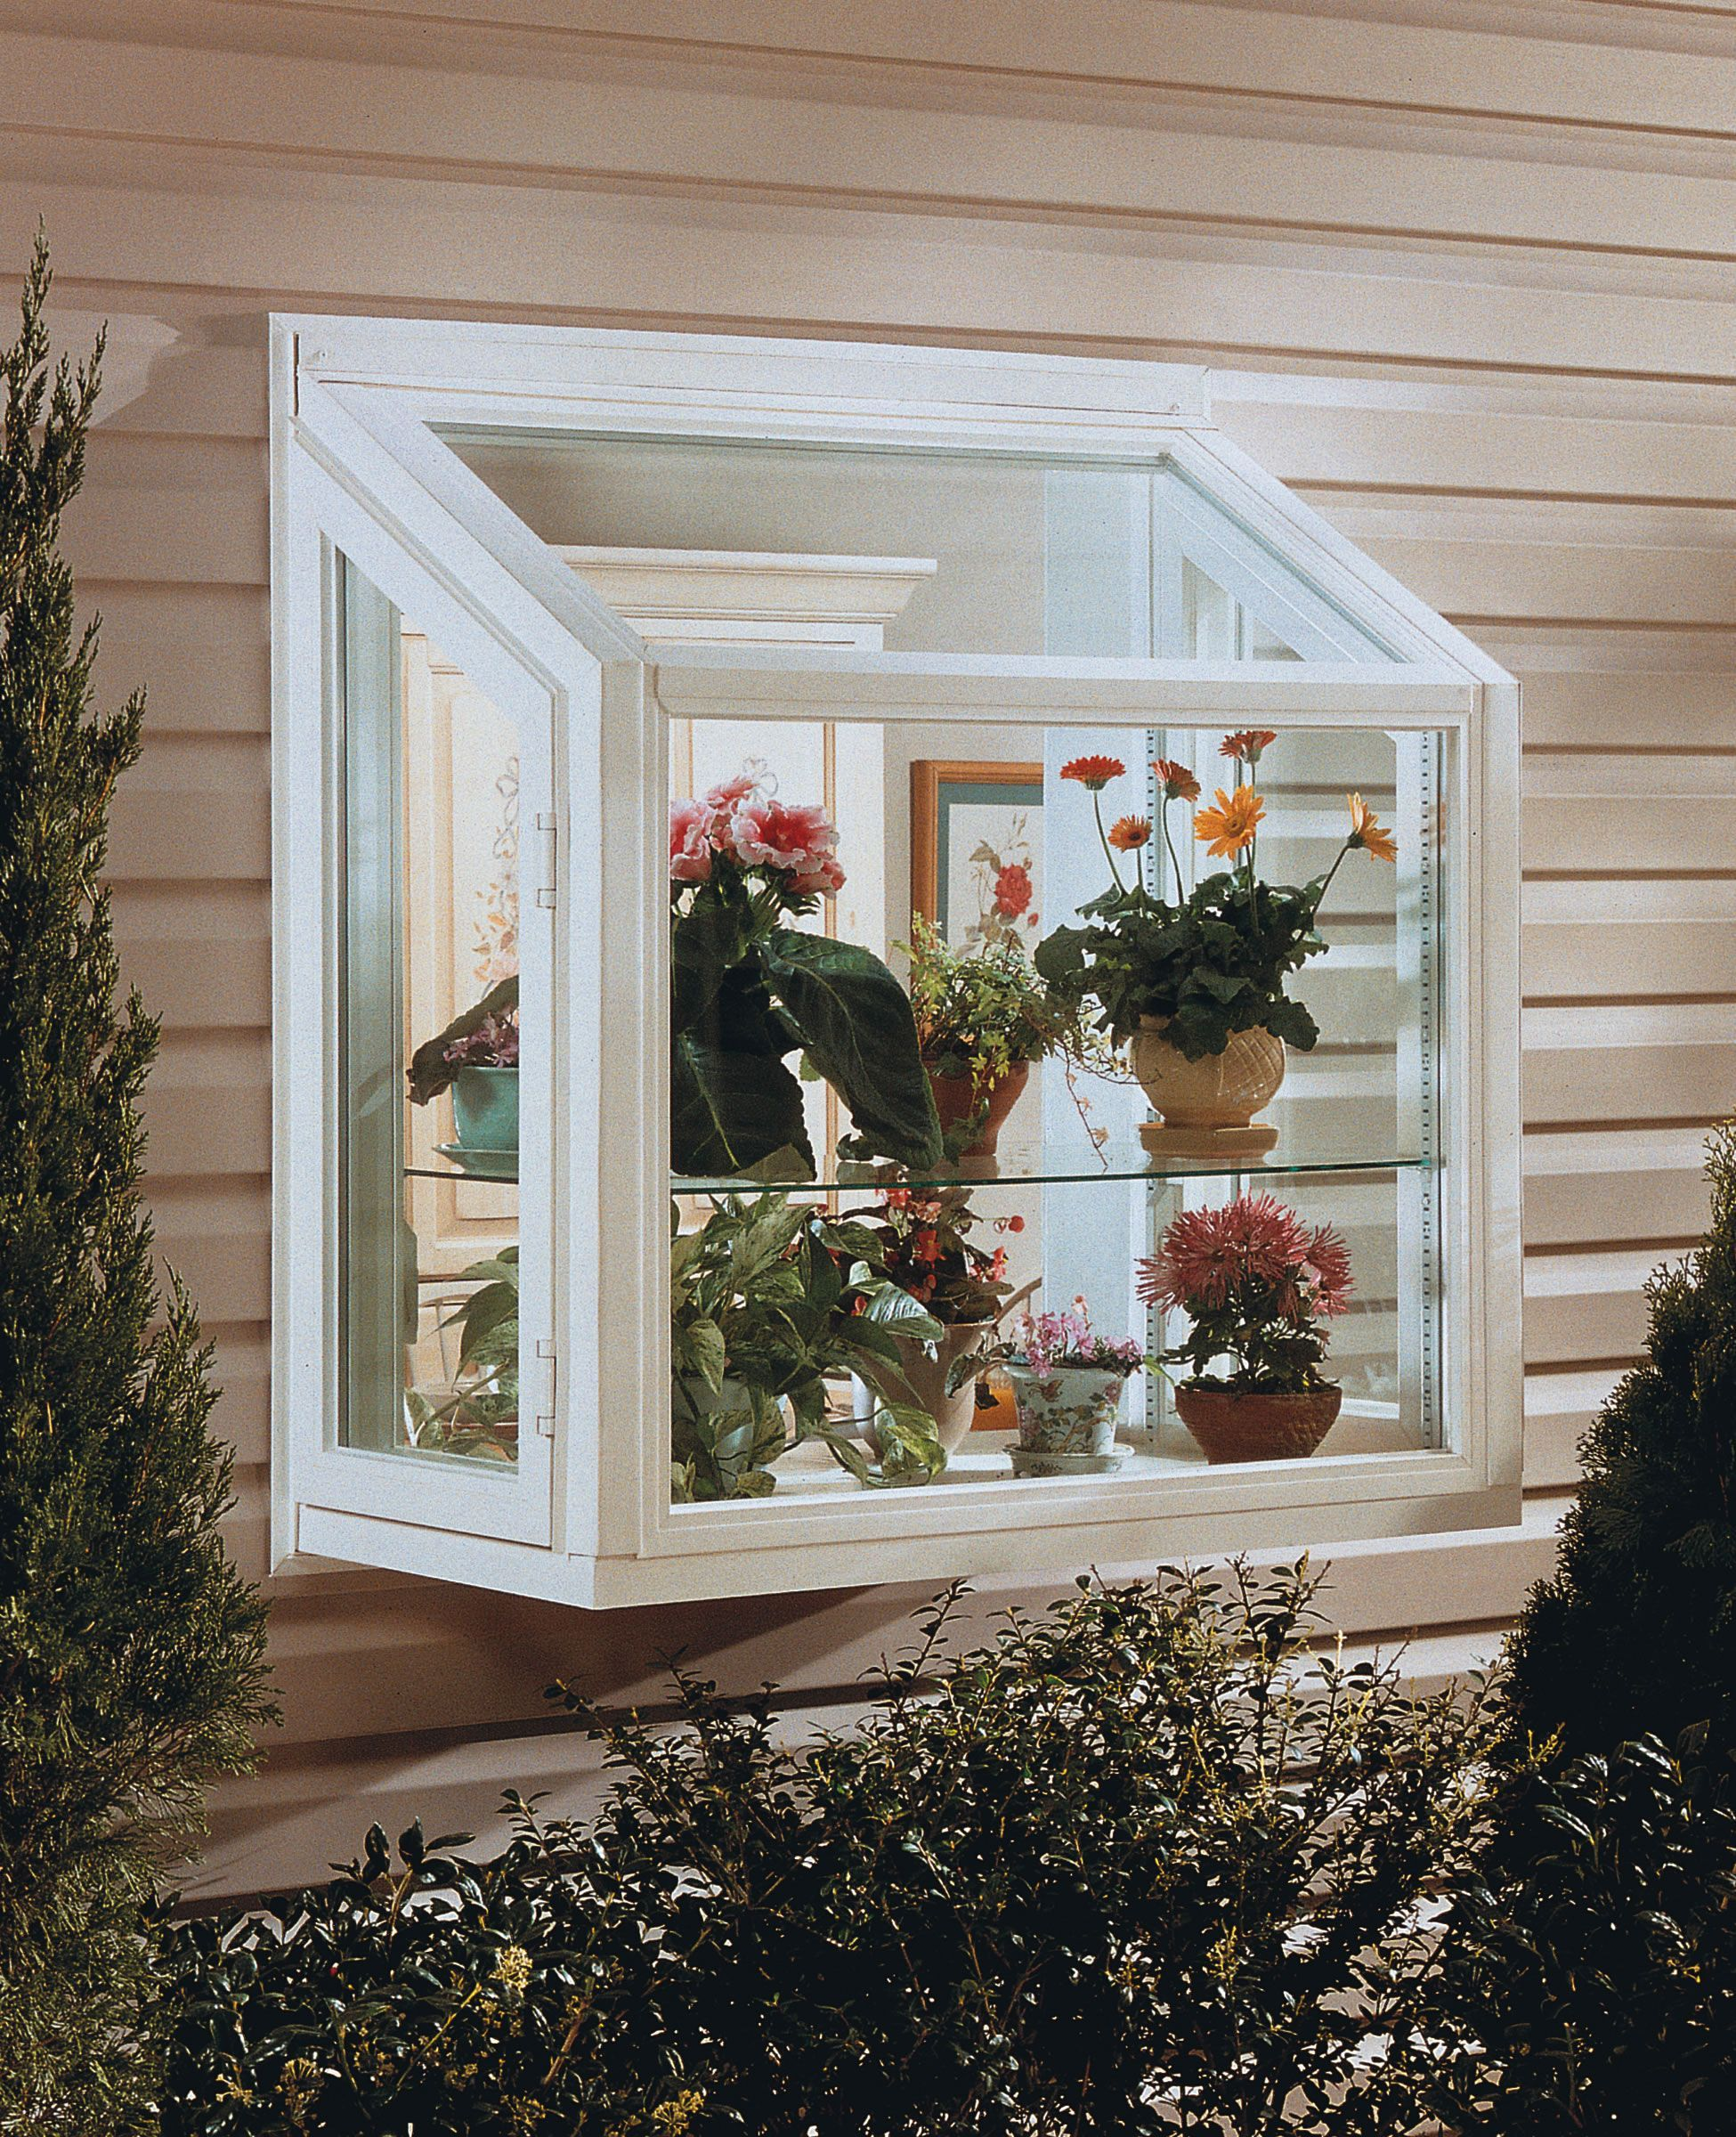 10 Kitchen Garden Window Ideas Most Of The Brilliant And Also